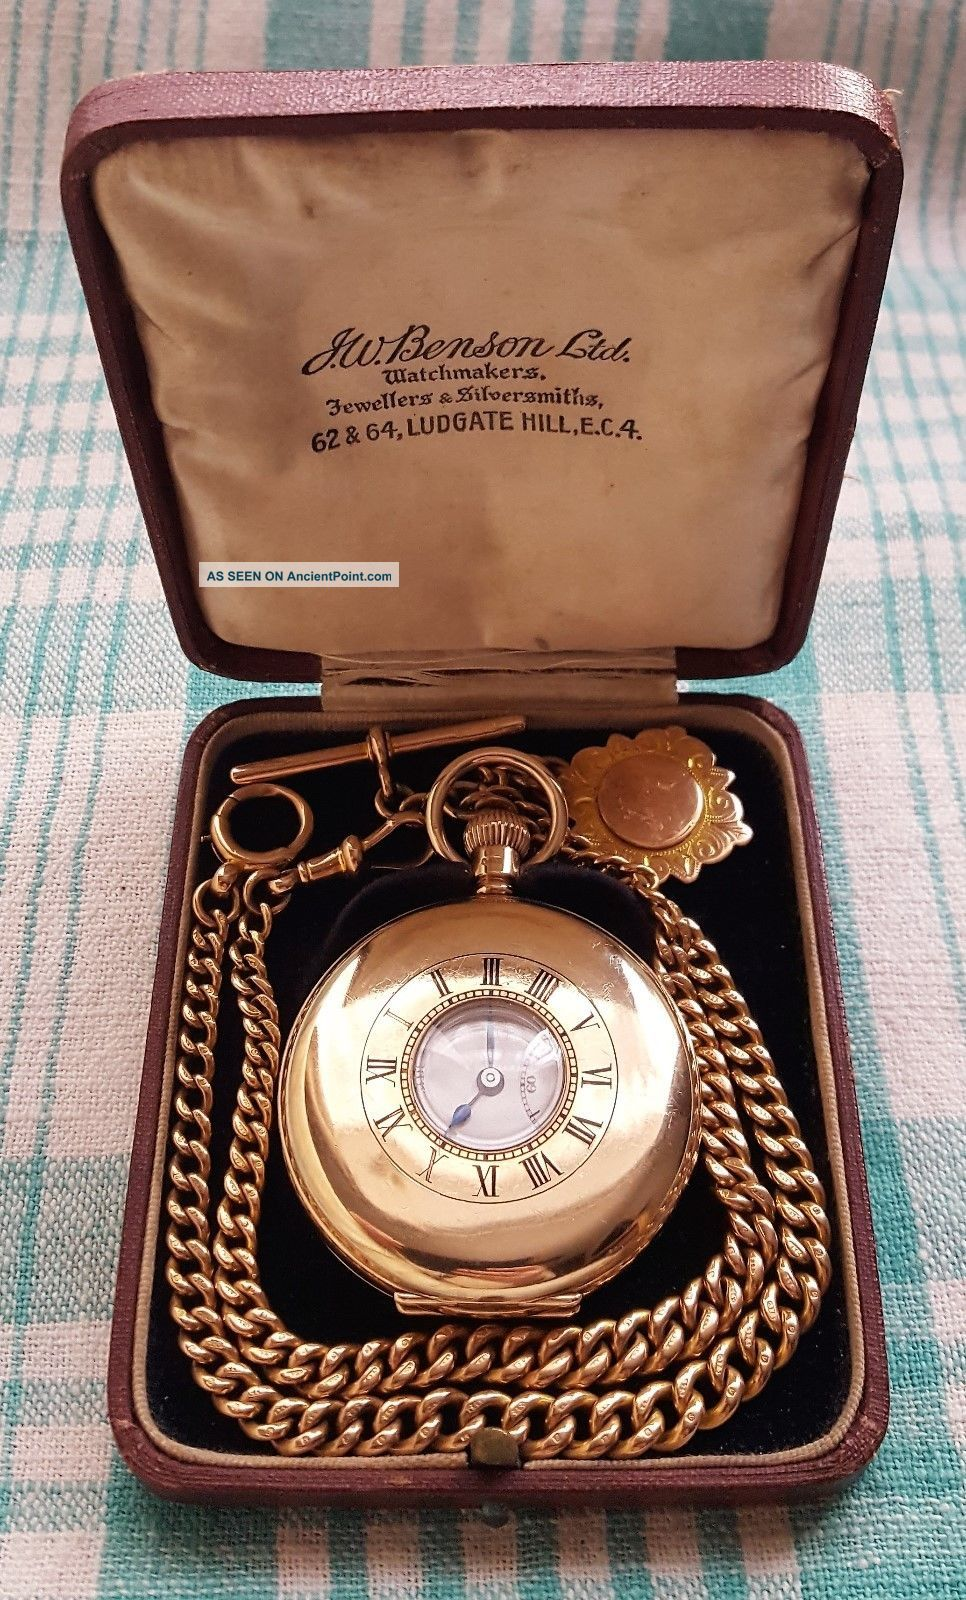 1926,  Jw.  Benson,  9ct Gold,  17 Jewel Half Hunter Pocket Watch,  9ct Albert Chain & Fob Pocket Watches/Chains/Fobs photo